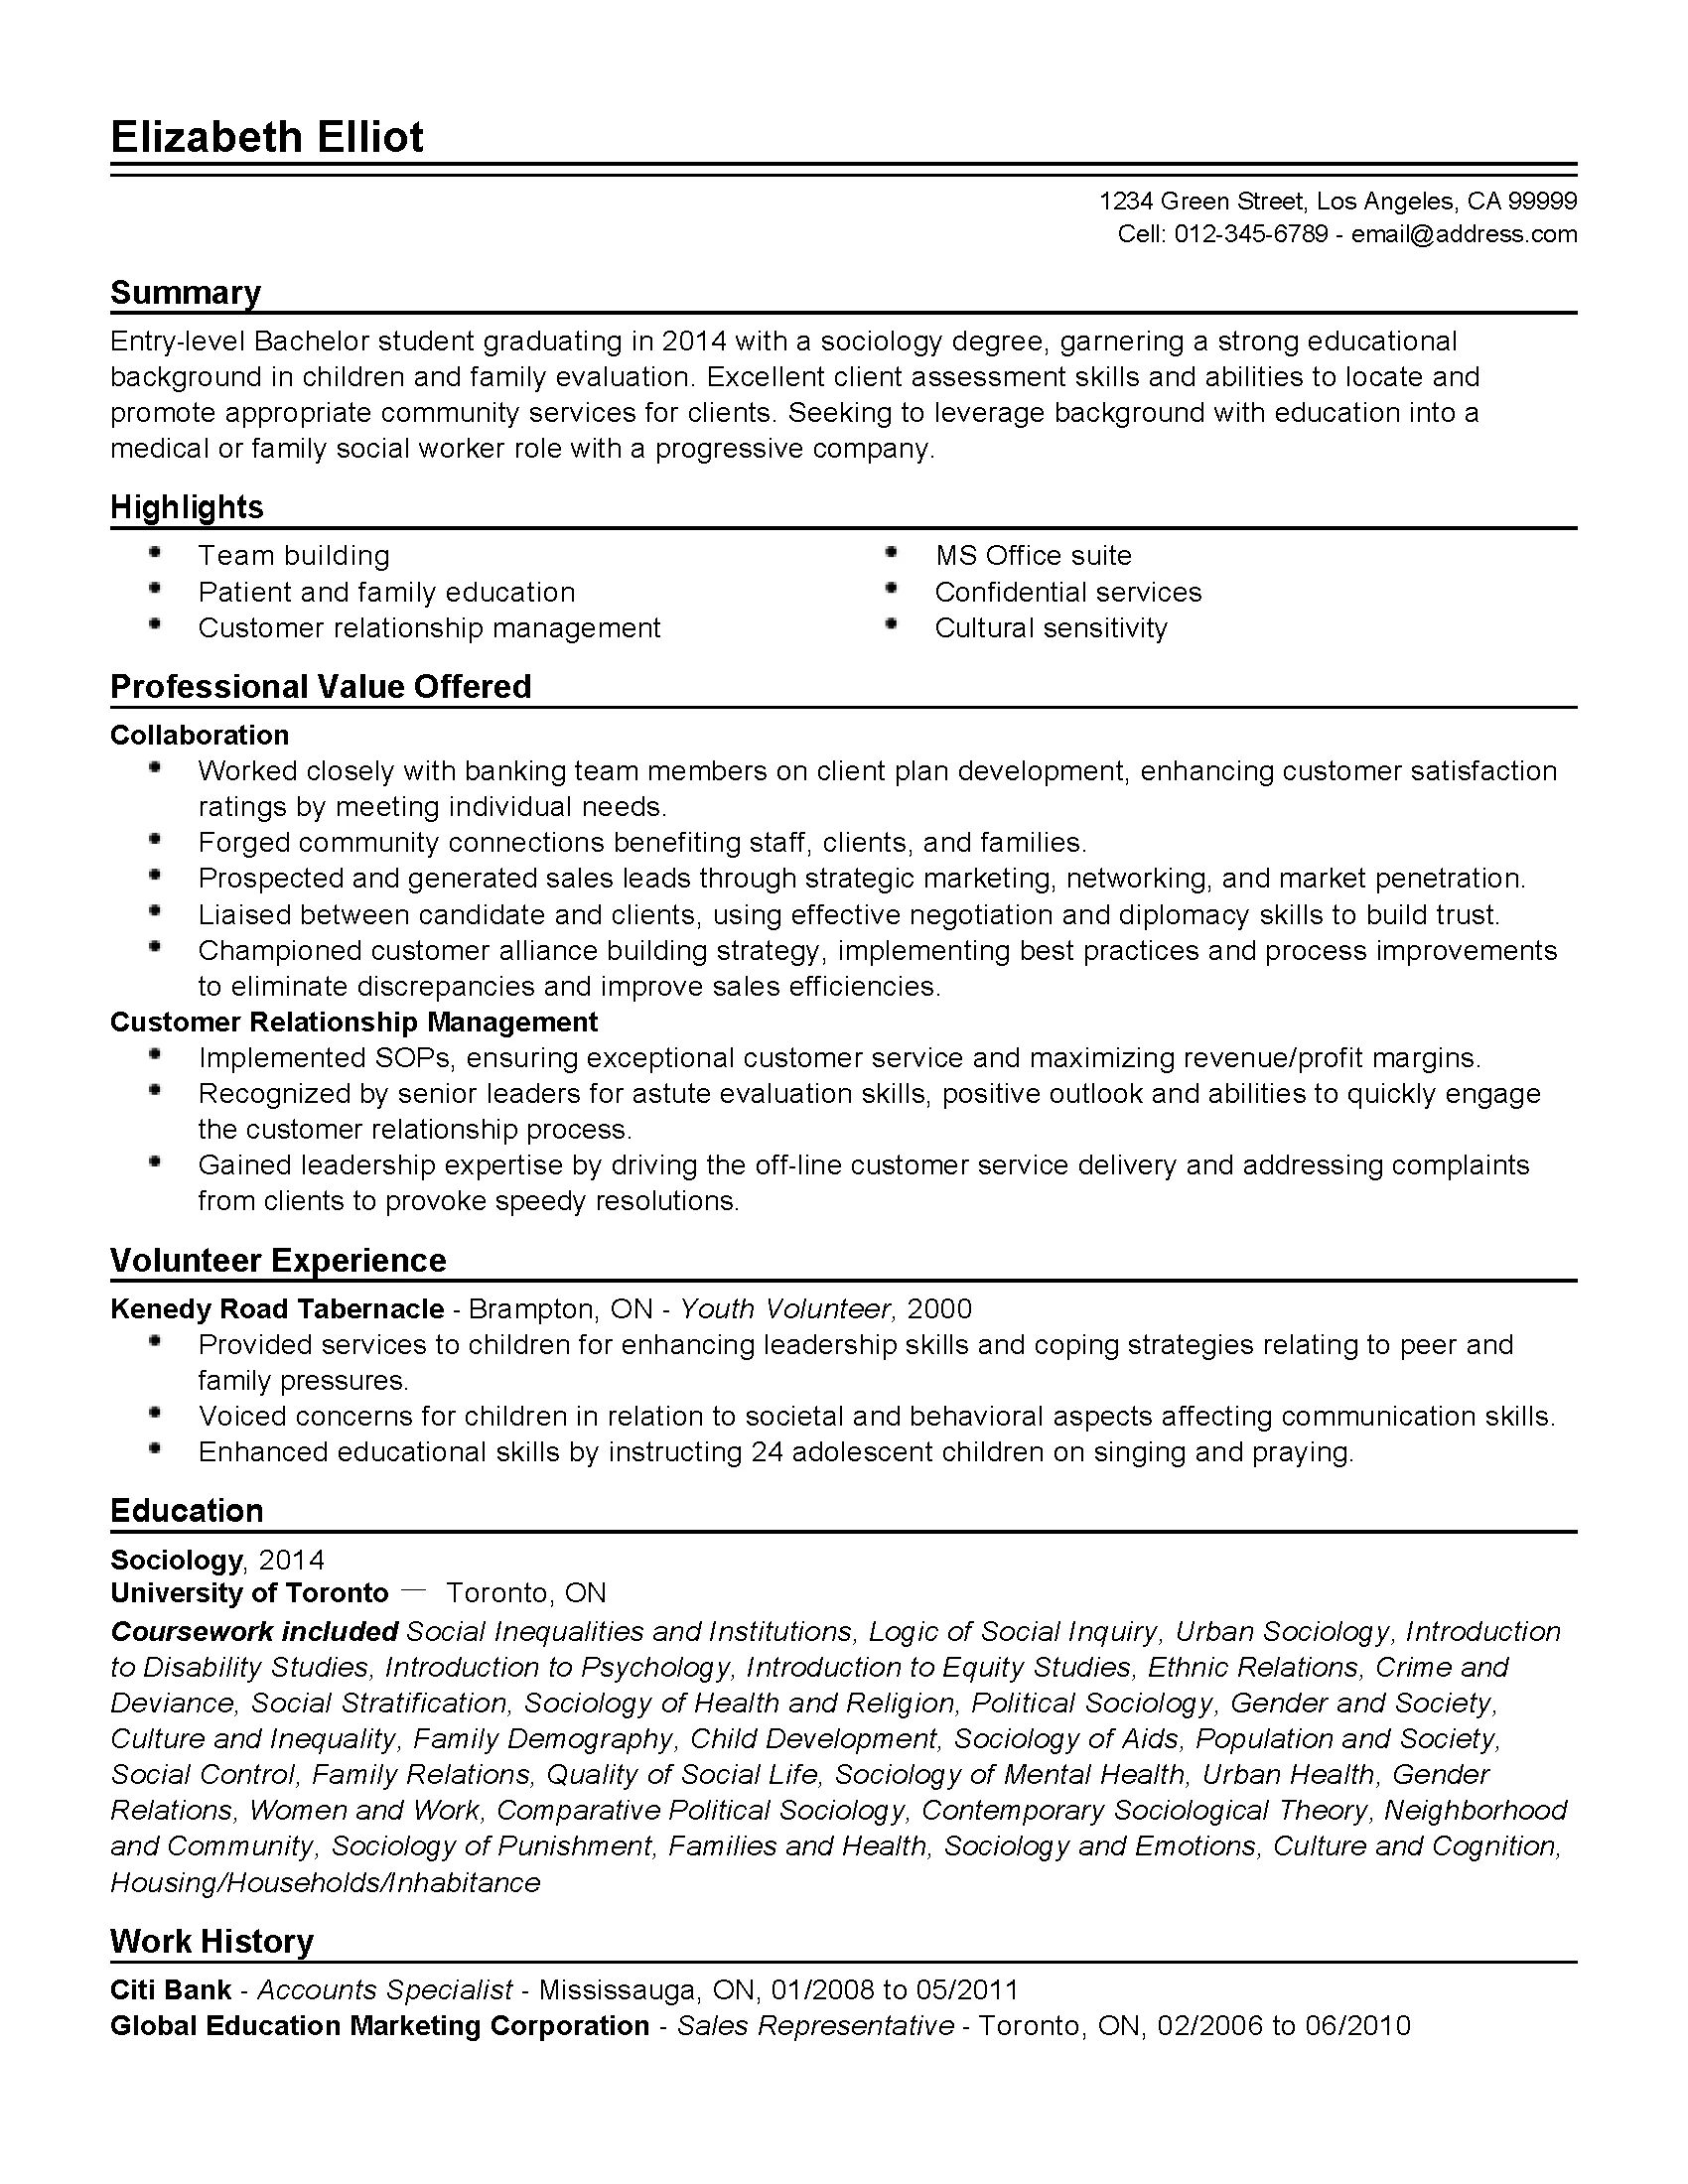 sample resumes on working with youth